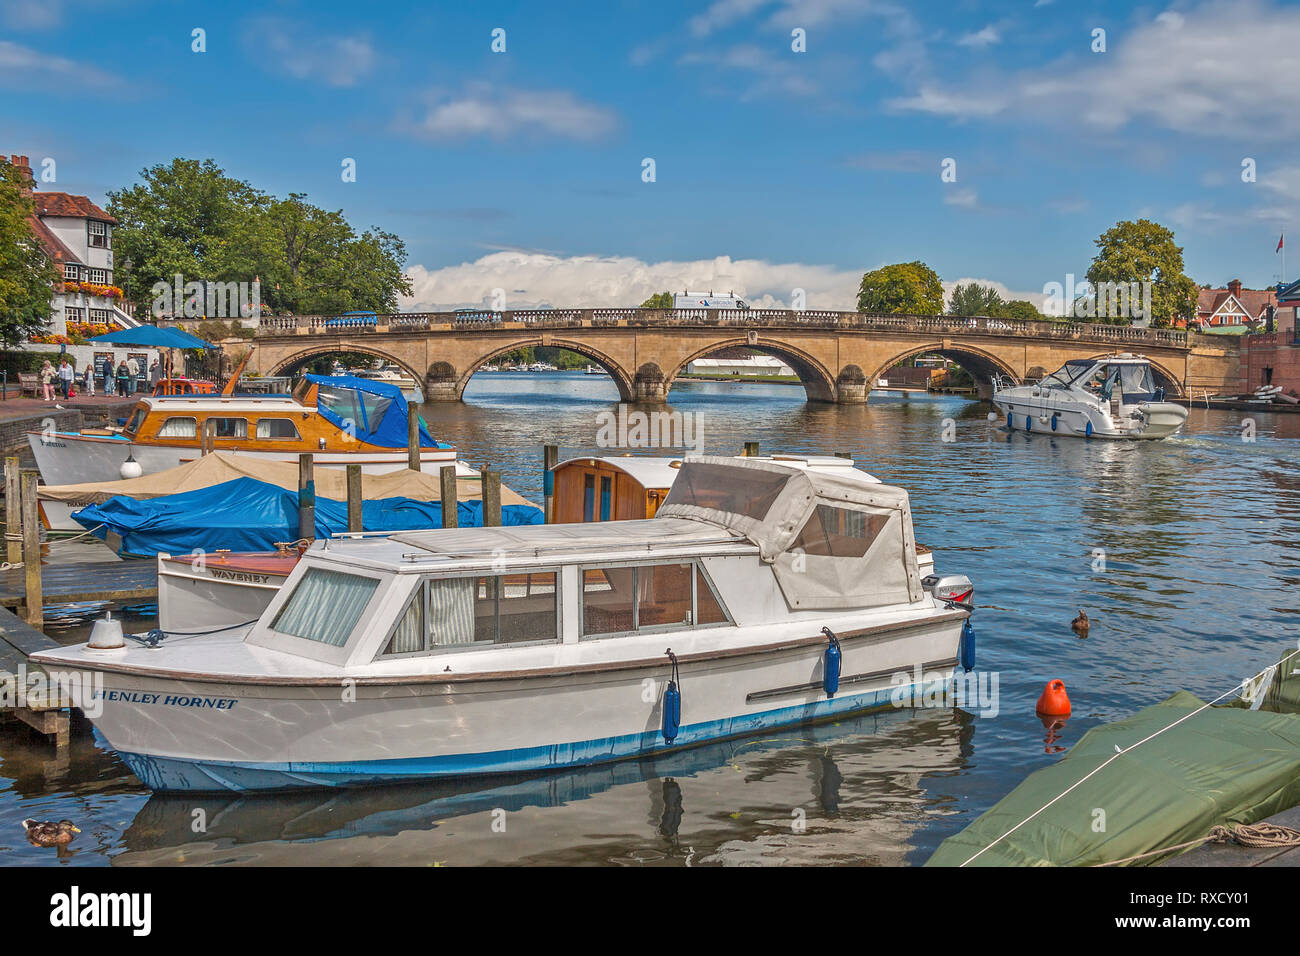 Bridge Across The River,  Henley On Thames, Oxfordshire, UK Stock Photo